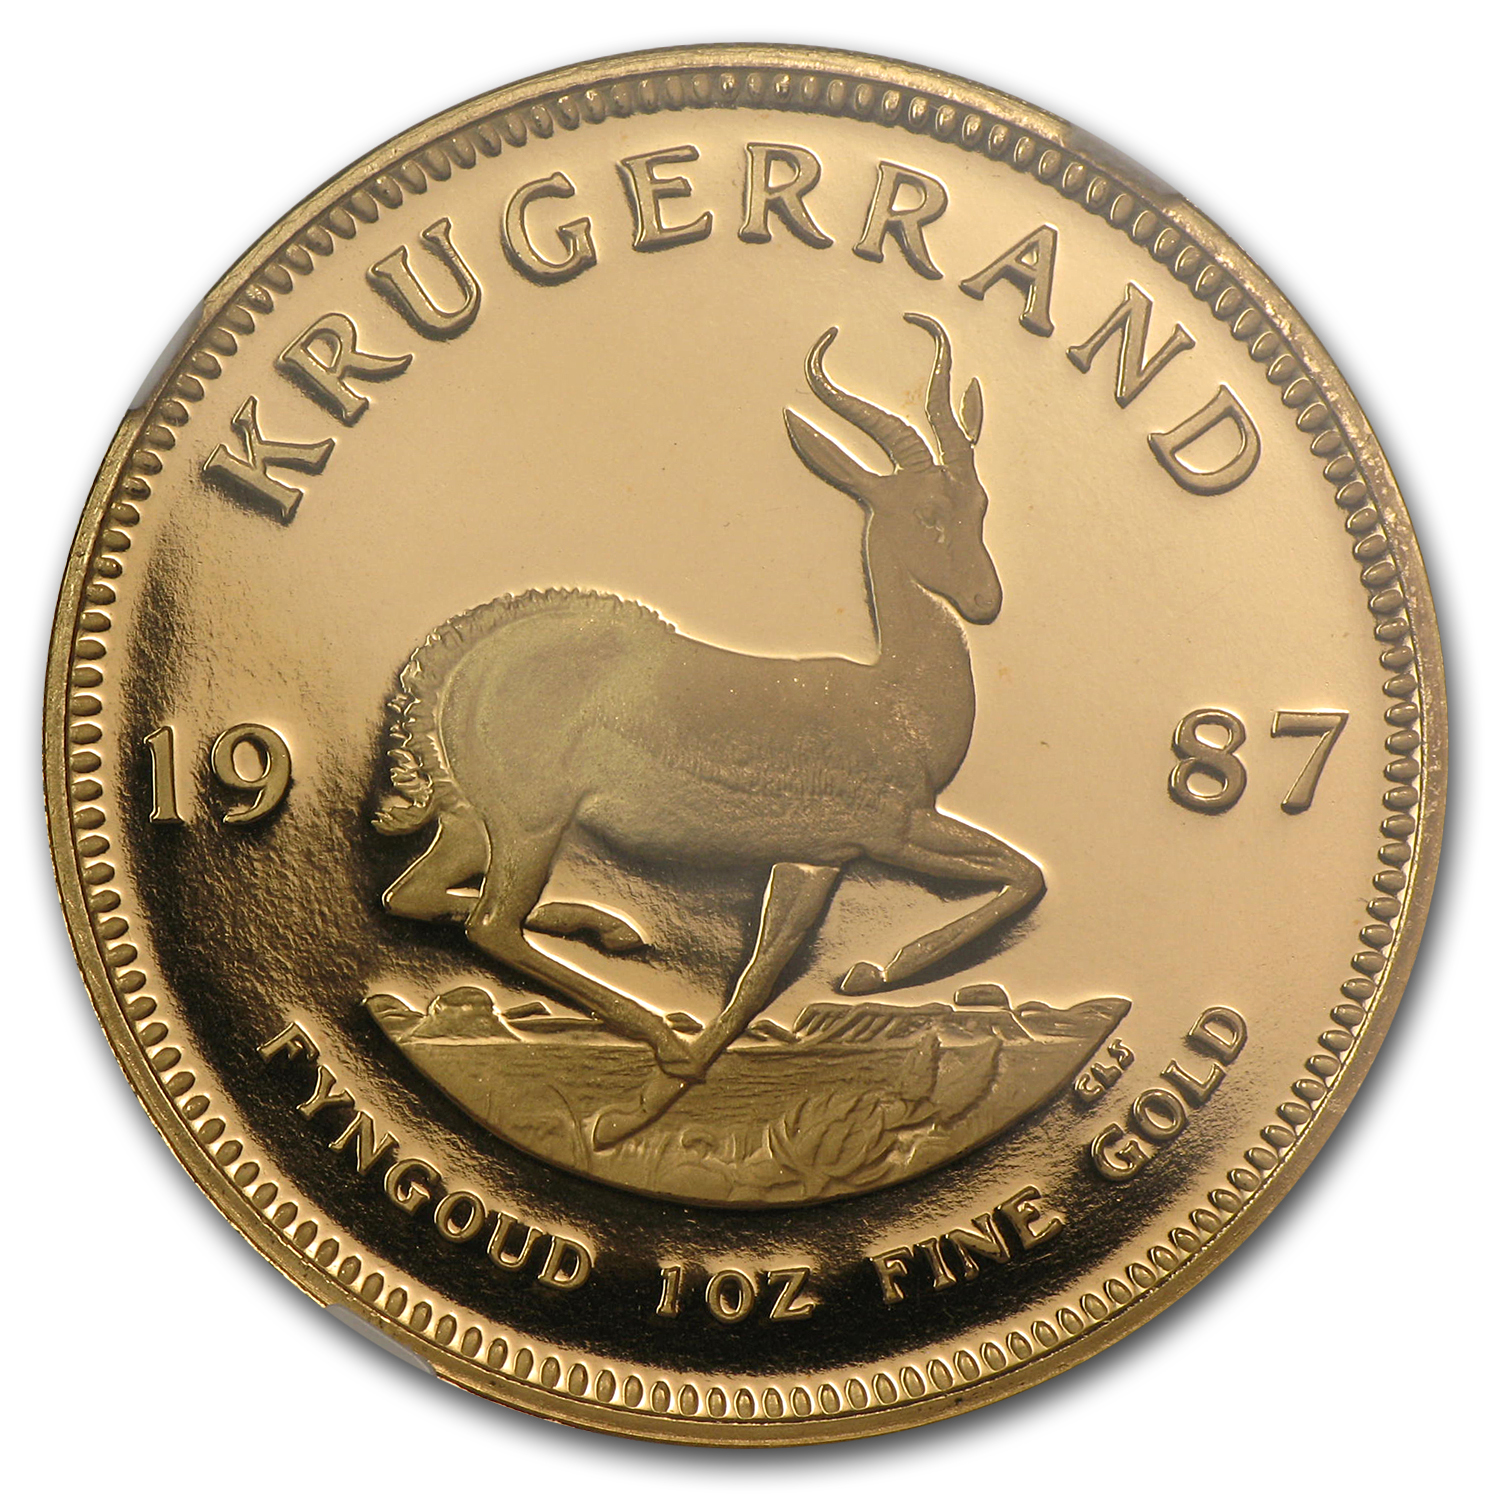 1987 South Africa 1 oz Gold Krugerrand PF-69 NGC